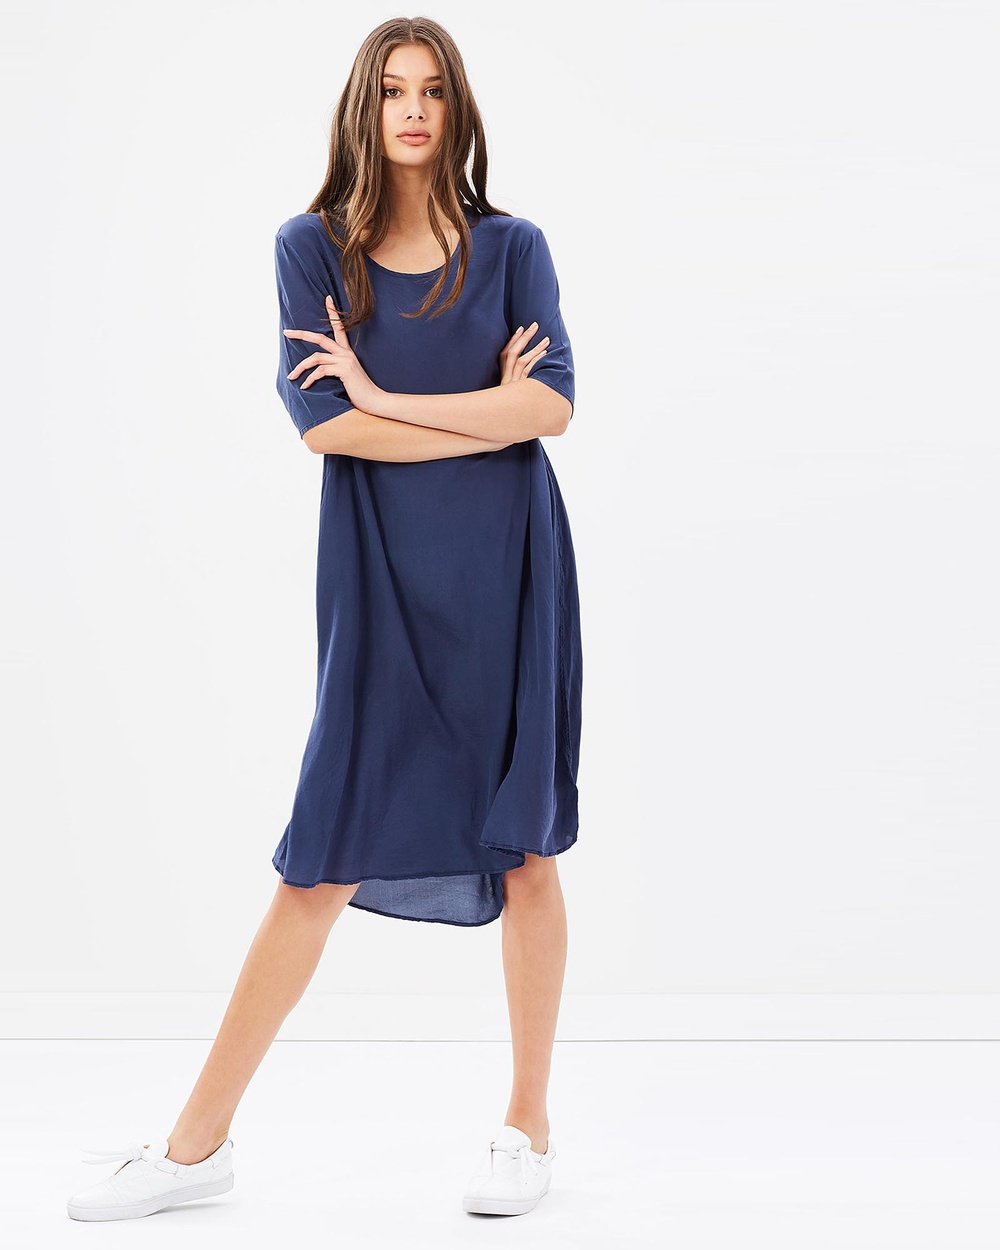 Primness Gigi Dress Dresses Navy Gigi Dress